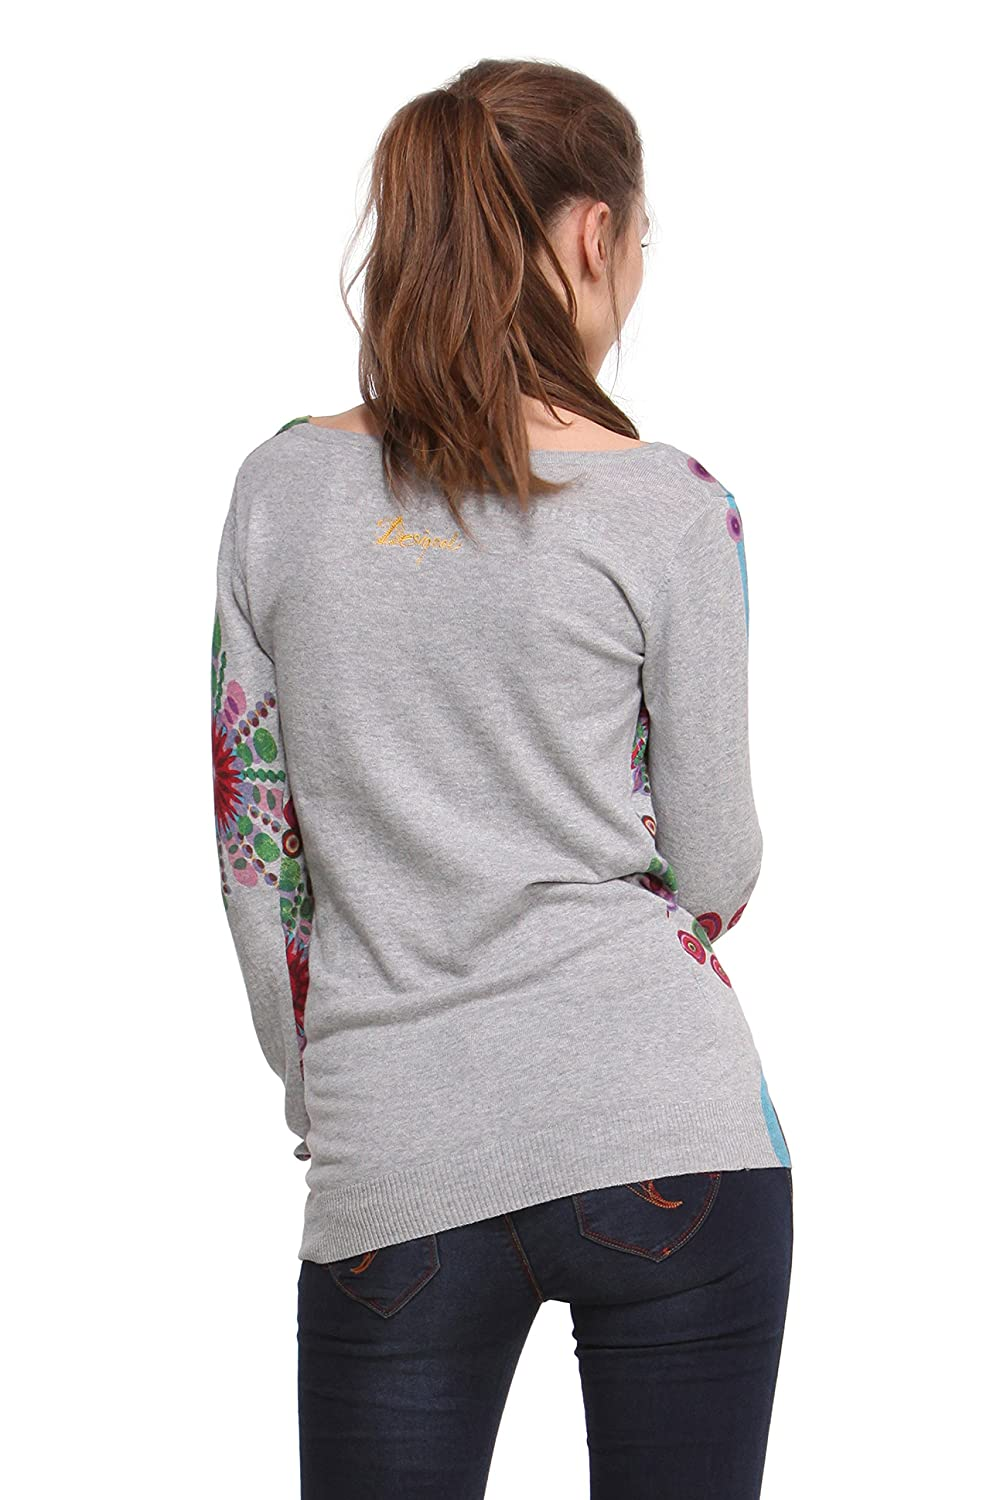 Desigual Womens Woman Long-Sleeve Versalle Pullover, Gray, Large at Amazon Womens Clothing store: